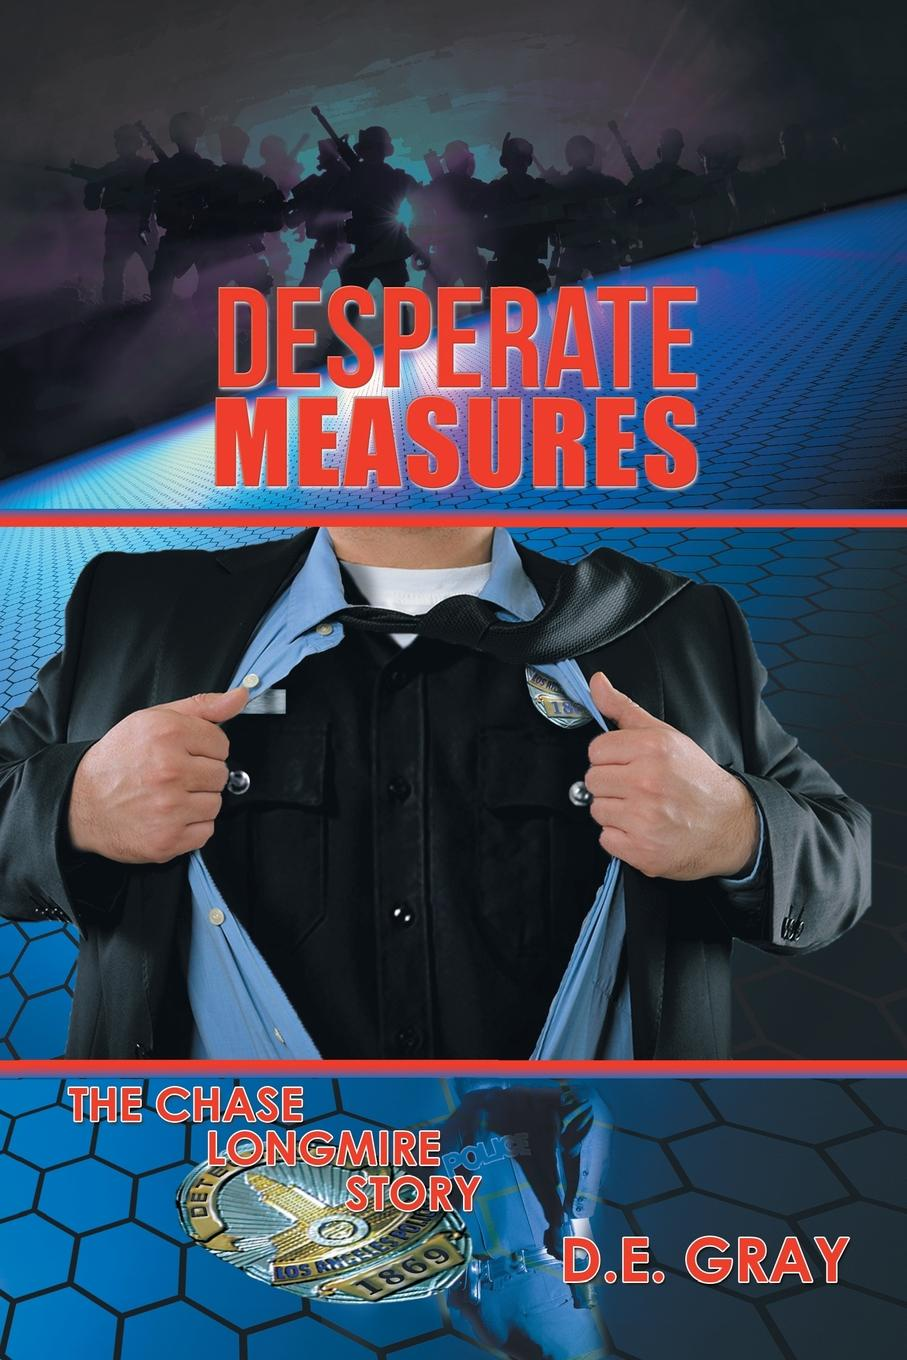 D.E. Gray Desperate Measures. The Chase Longmire Story